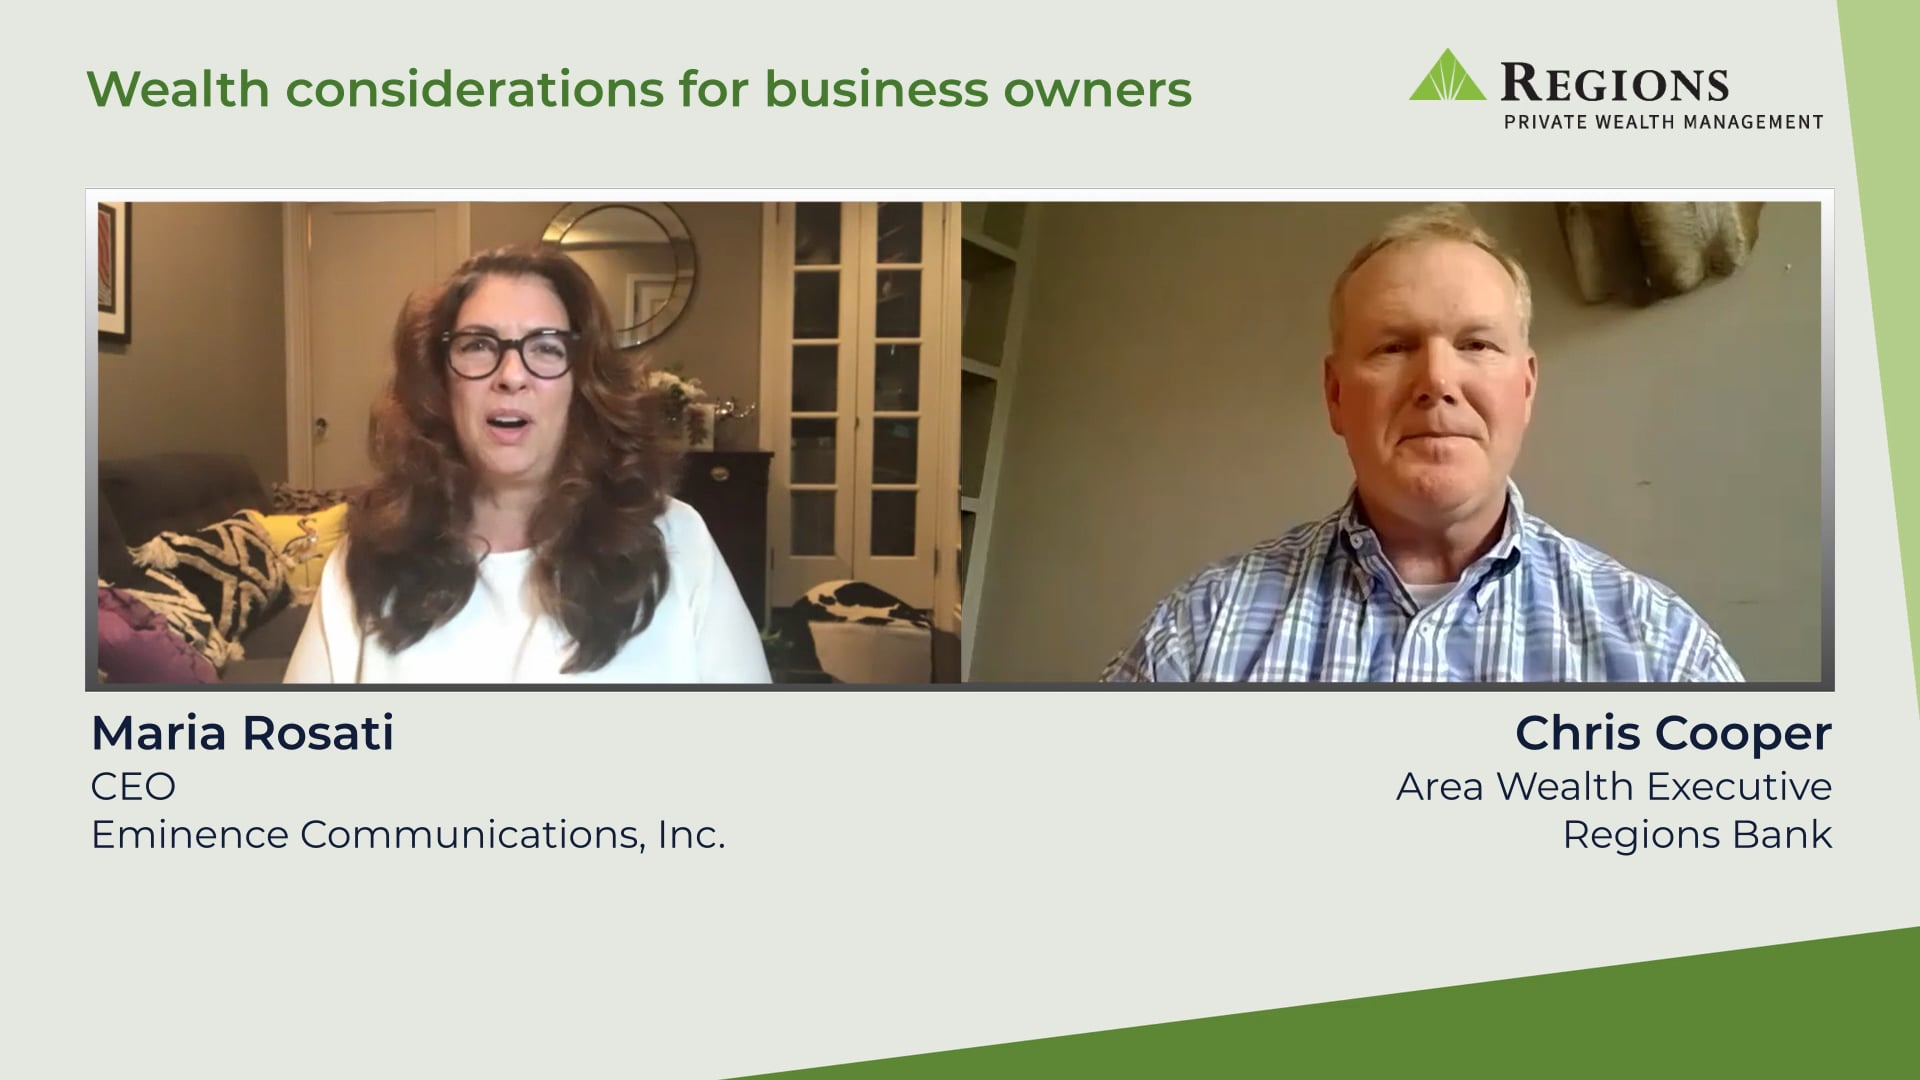 Wealth considerations for business owners